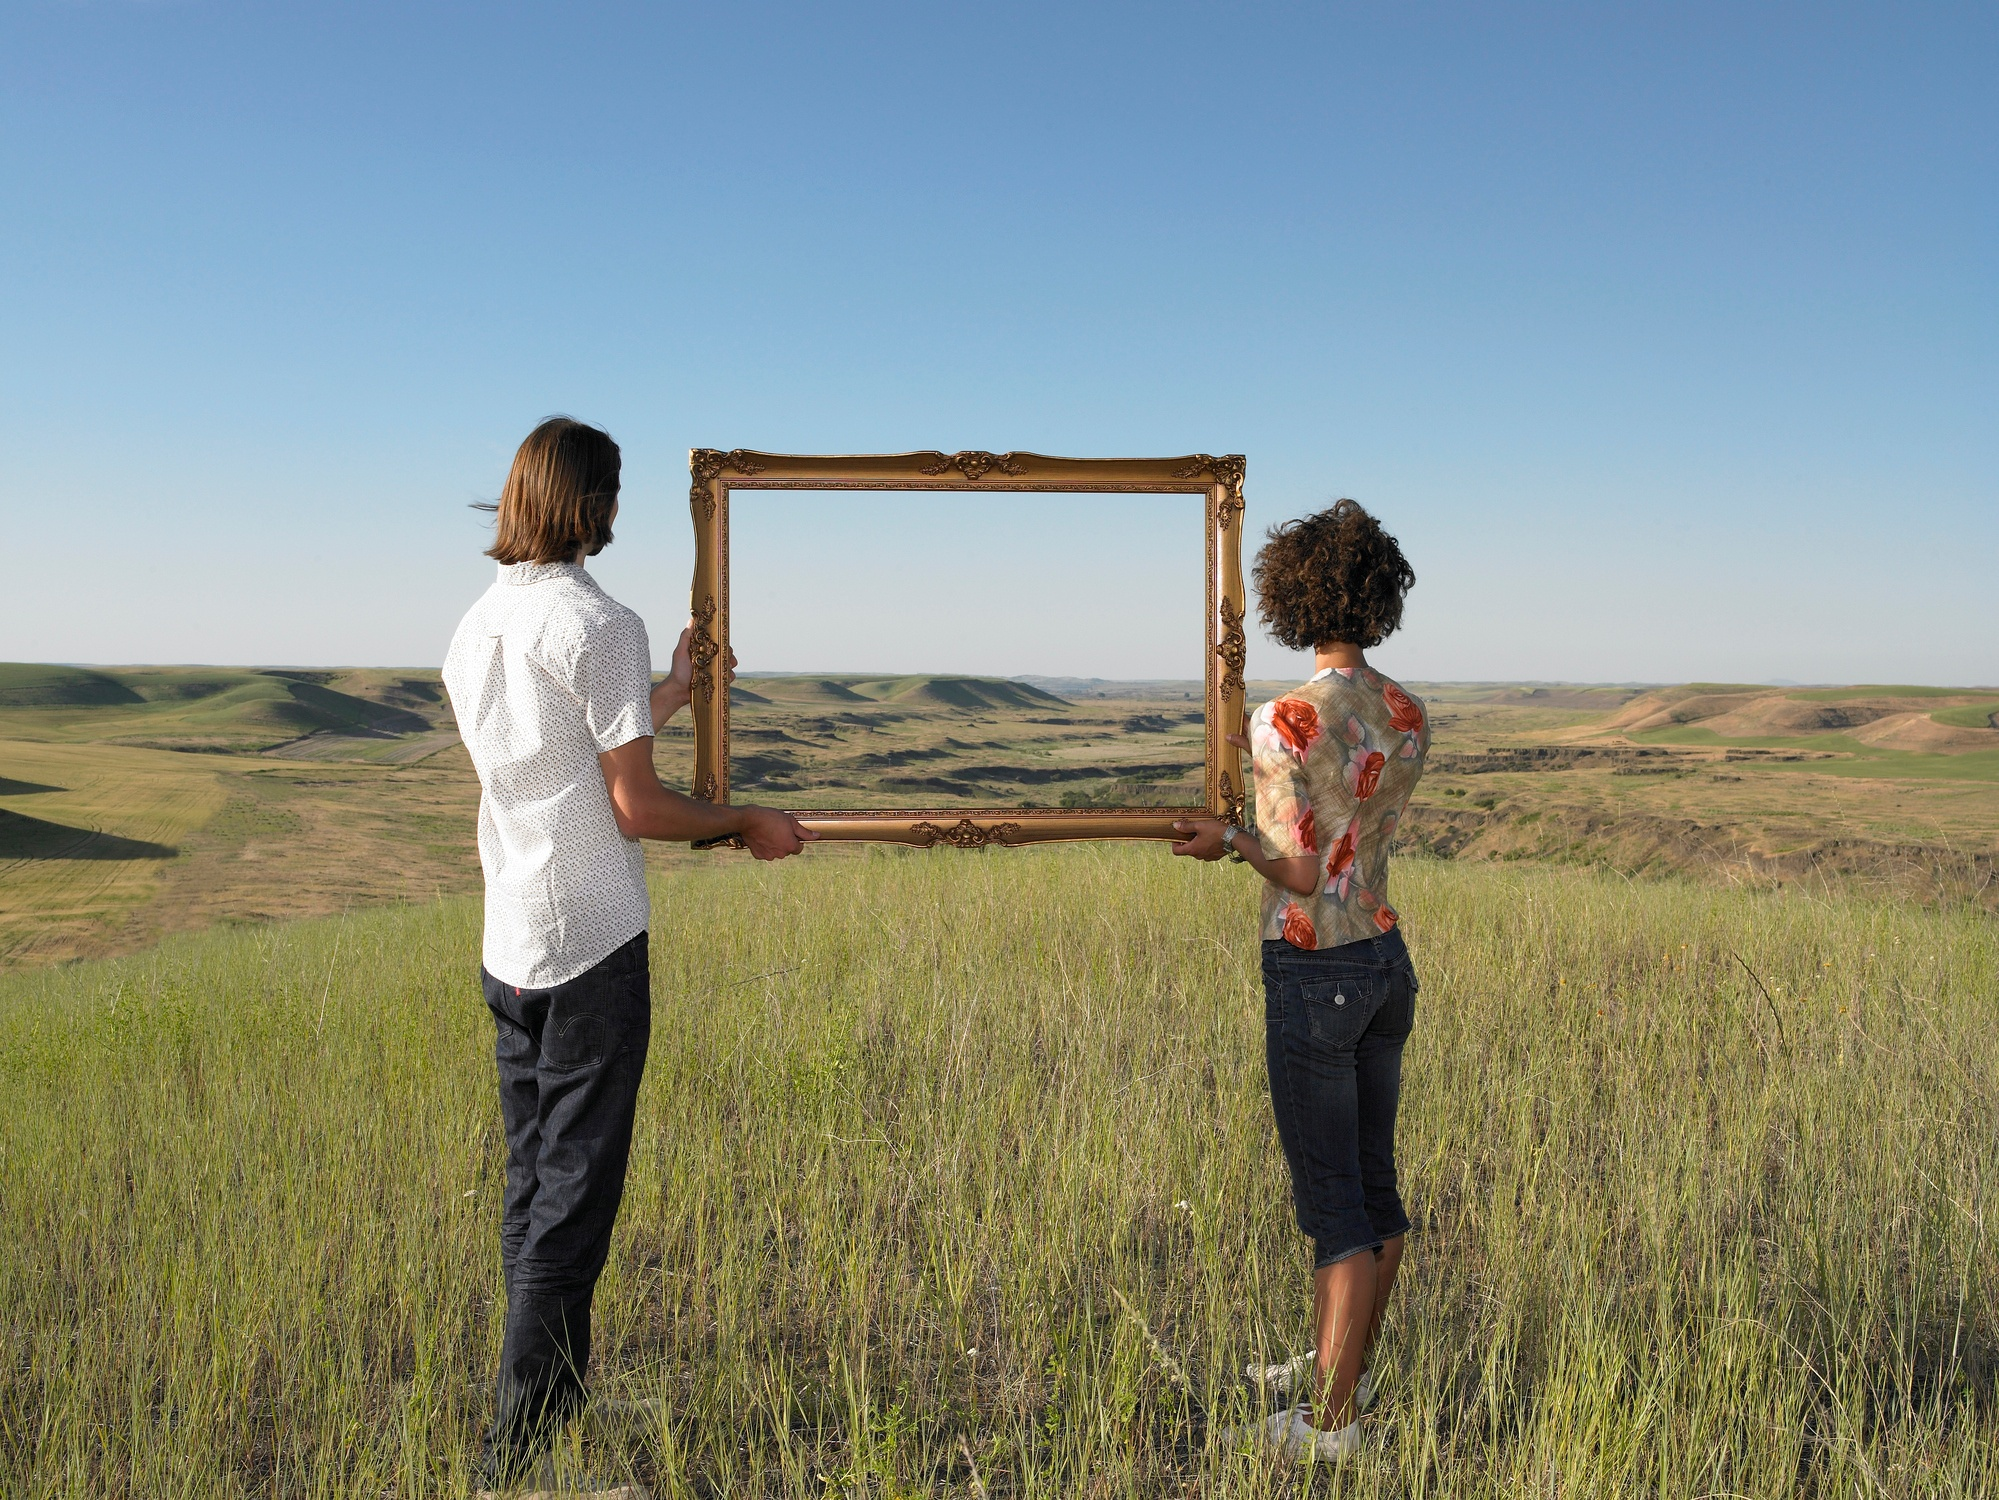 two people in a field holding a picture frame